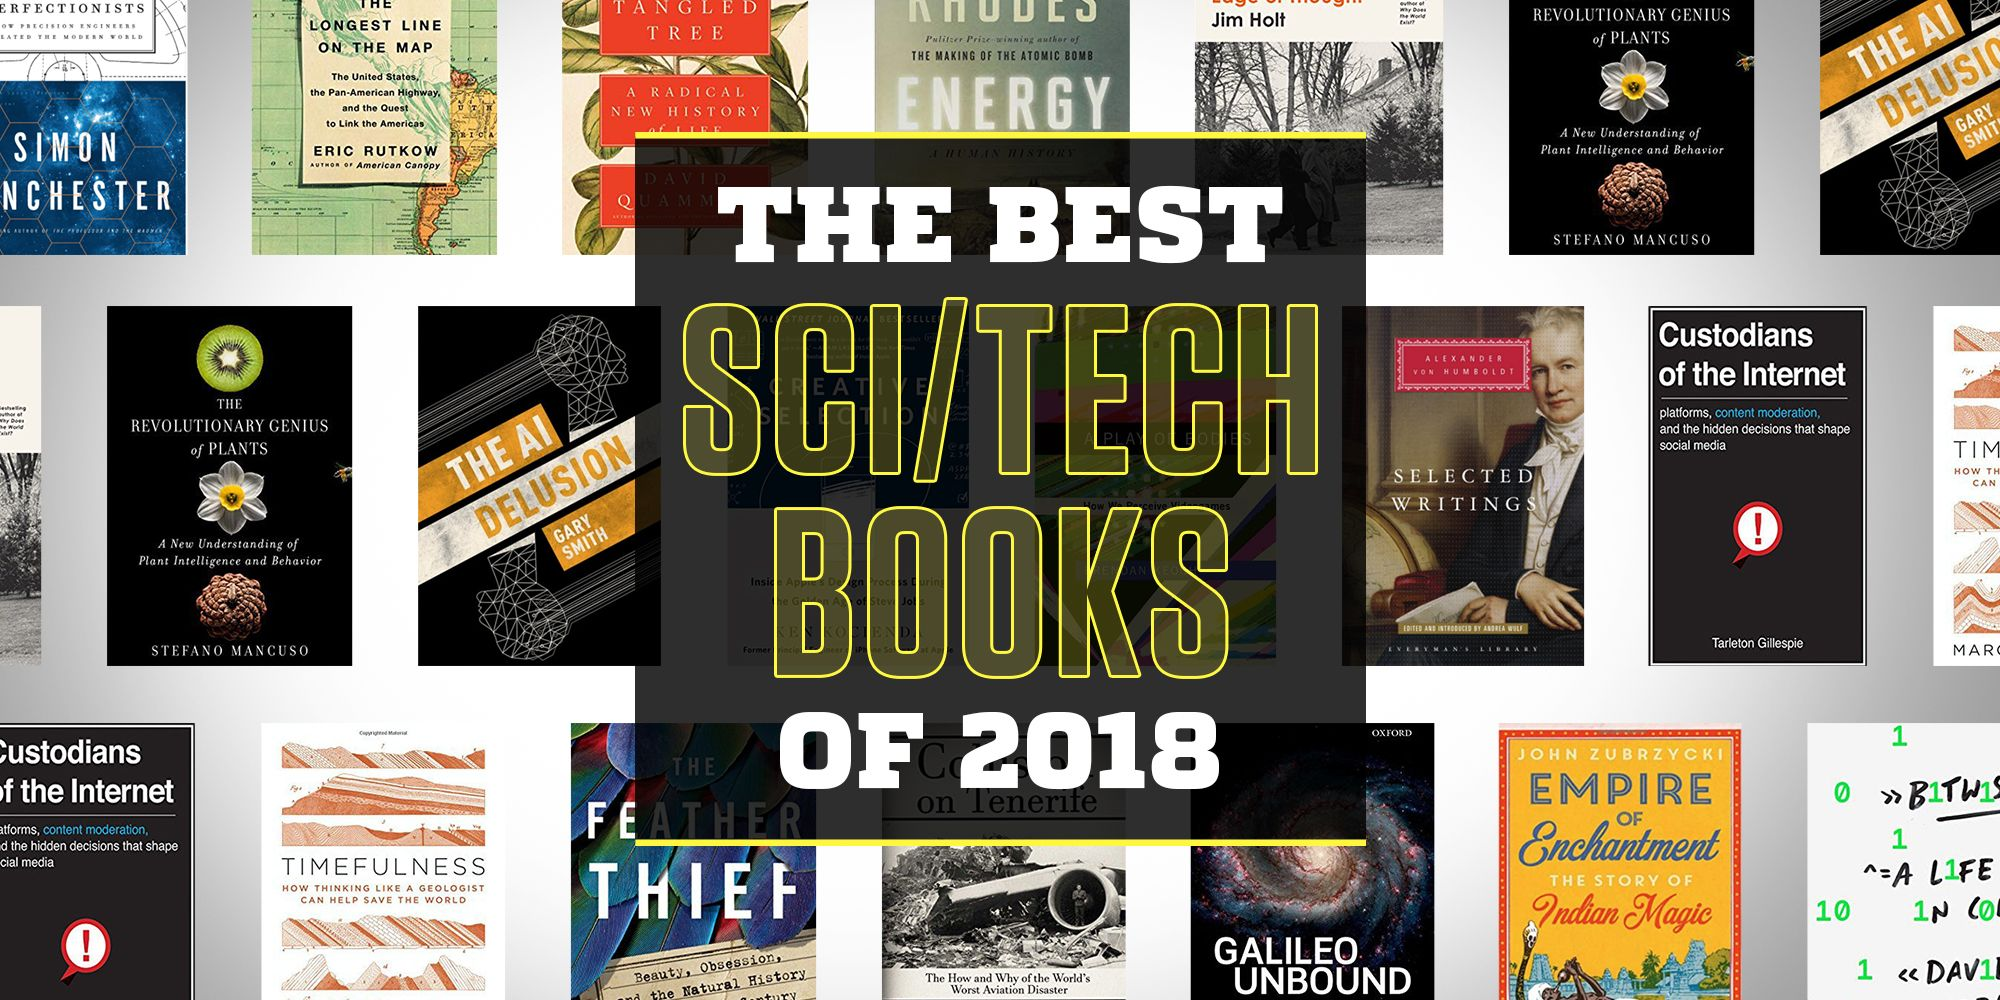 The Best Sci Tech Books 2018